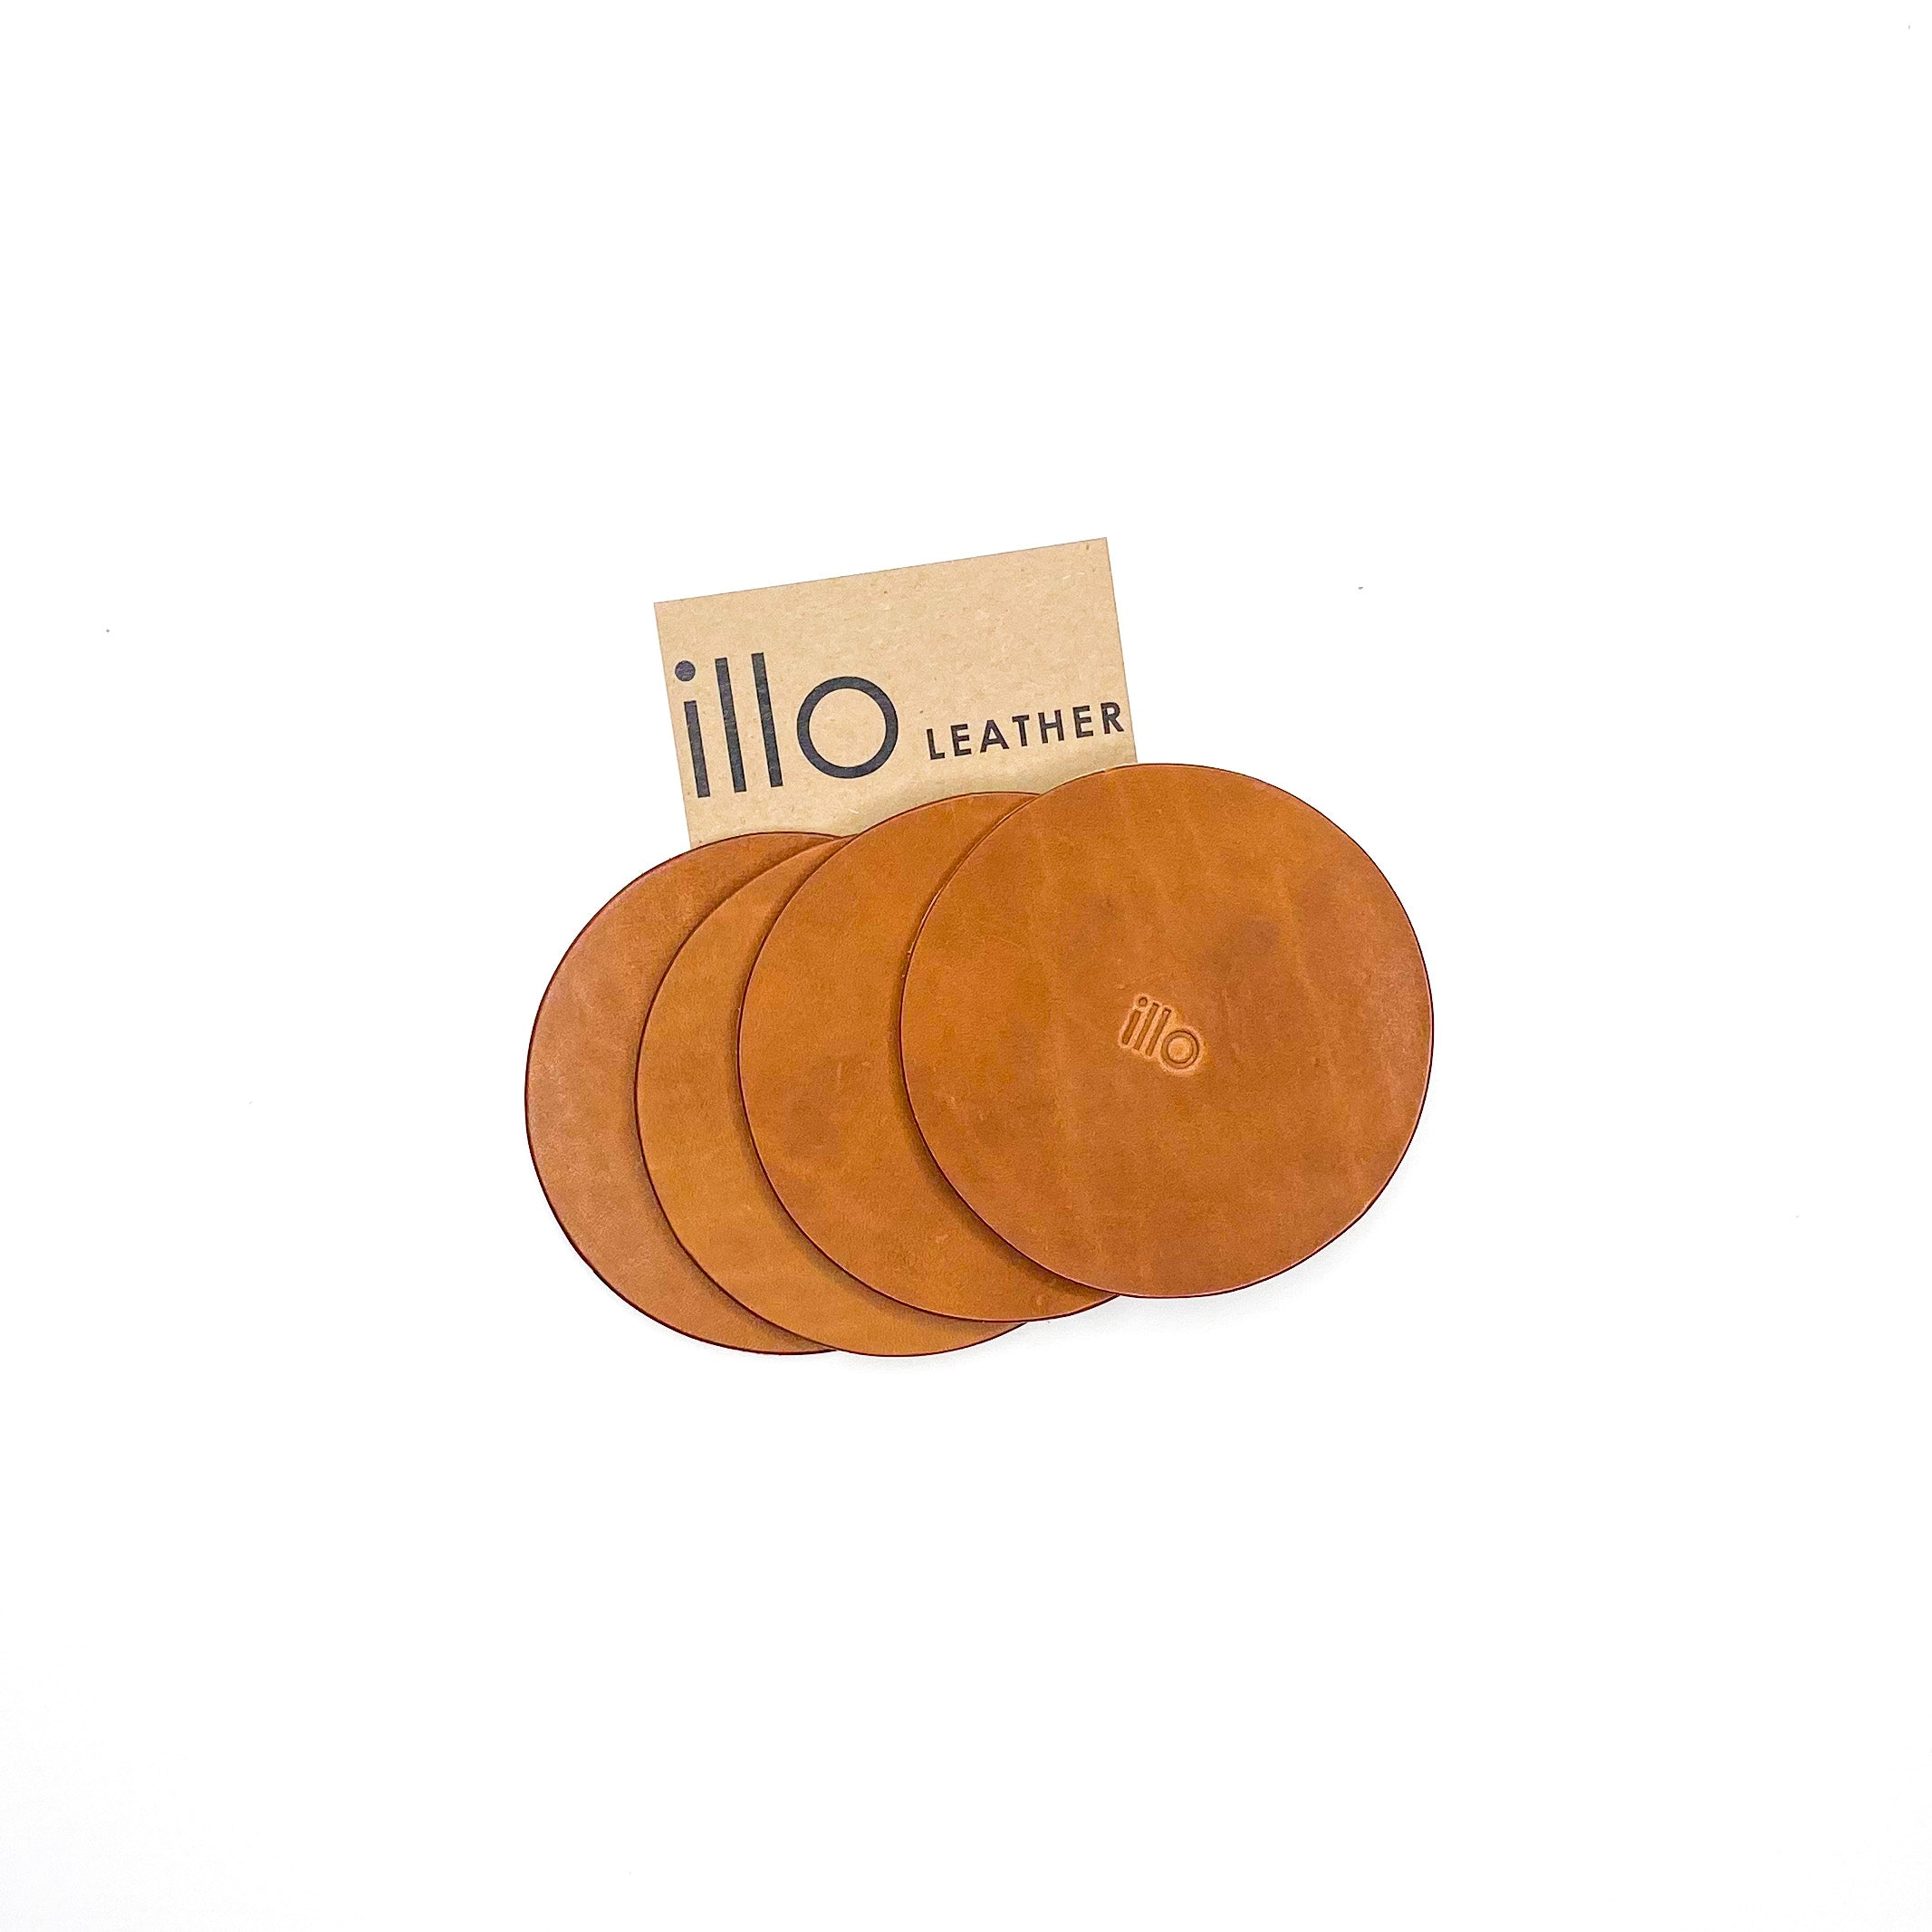 illo Leather Buck Coaster Set of 4